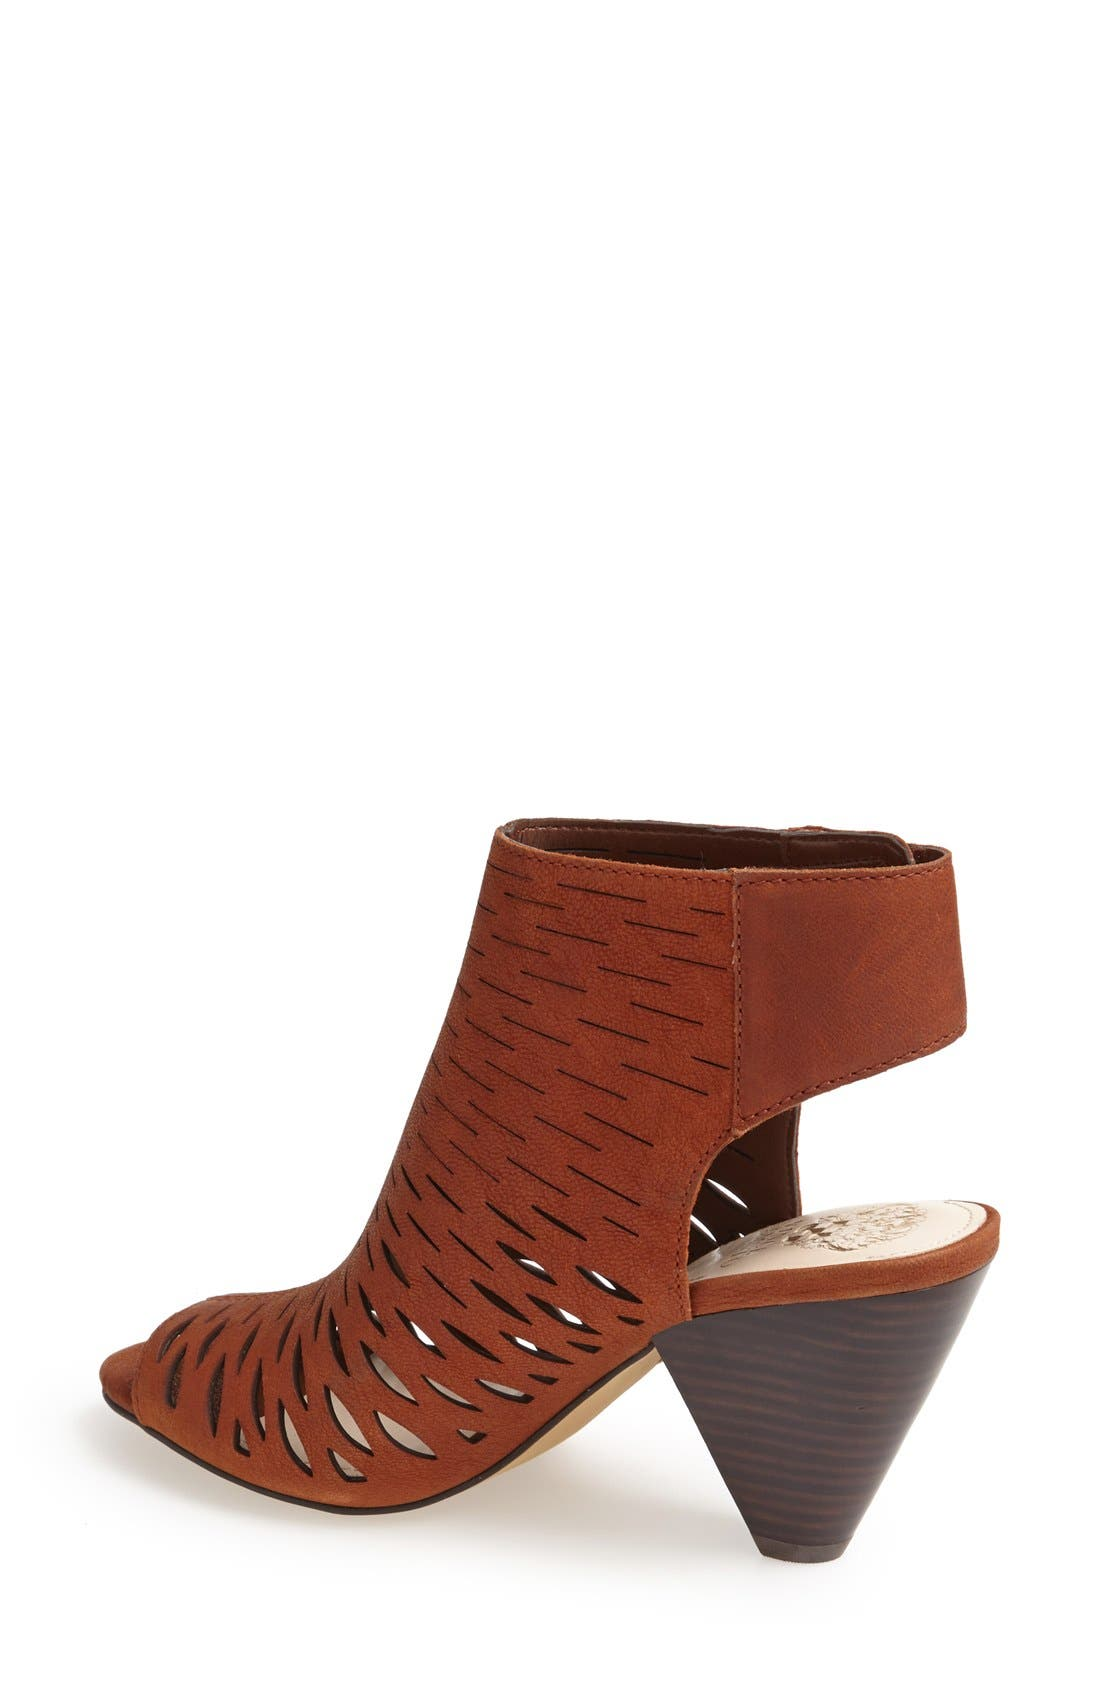 'Estell' Open Toe Bootie,                             Alternate thumbnail 2, color,                             Dark Brown